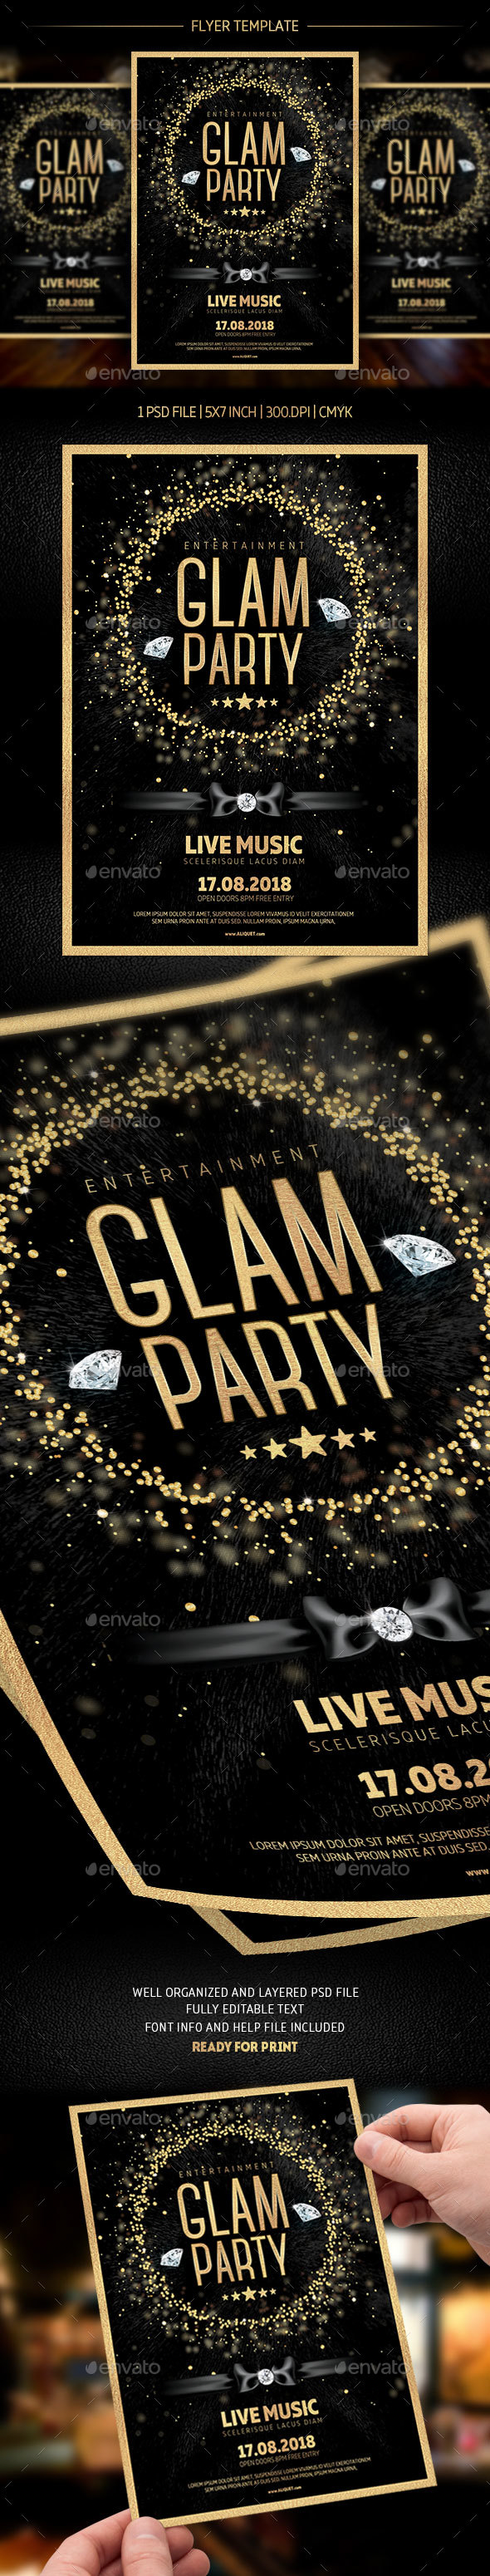 Glam Party Flyer Template - Flyers Print Templates